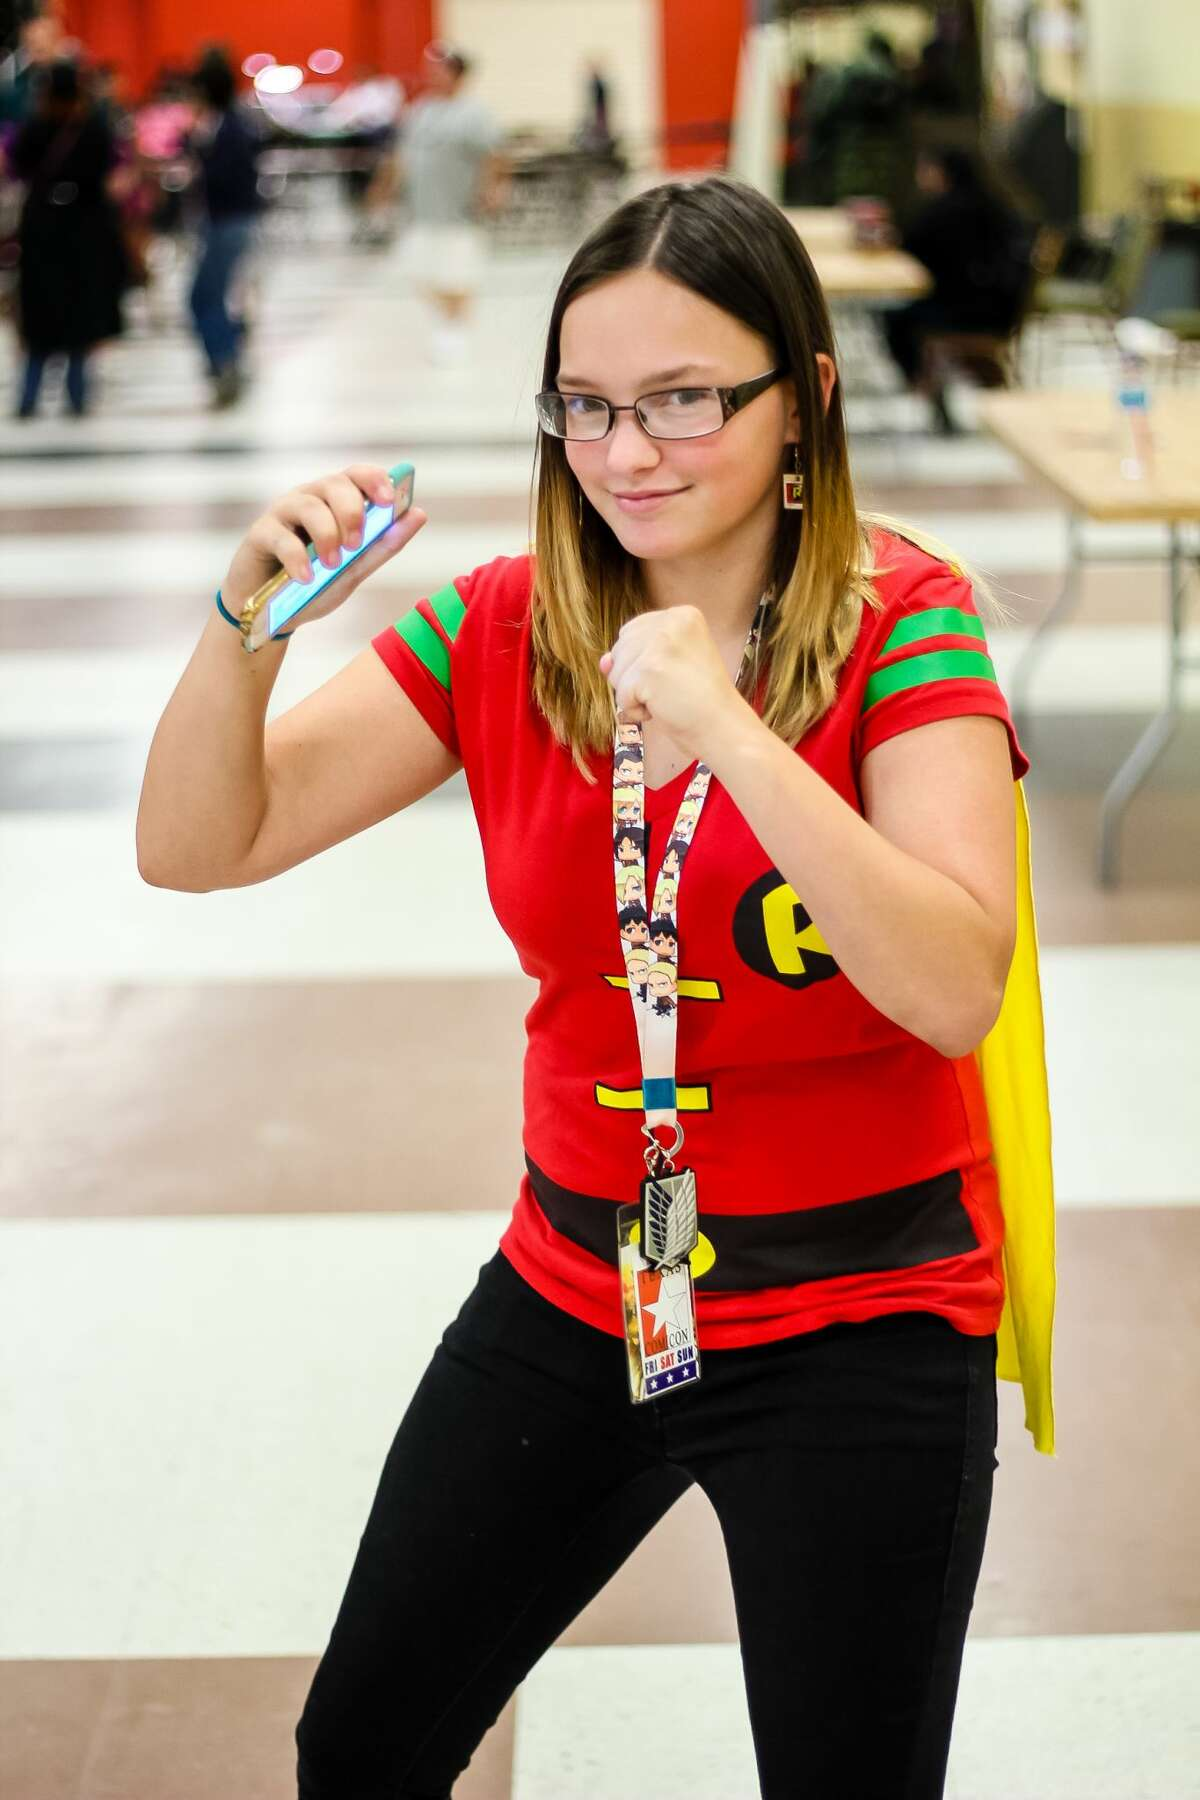 San Antonio residents went all out for the Texas Comicon festival on July 29-31, 2016 at the San Antonio Event Center.